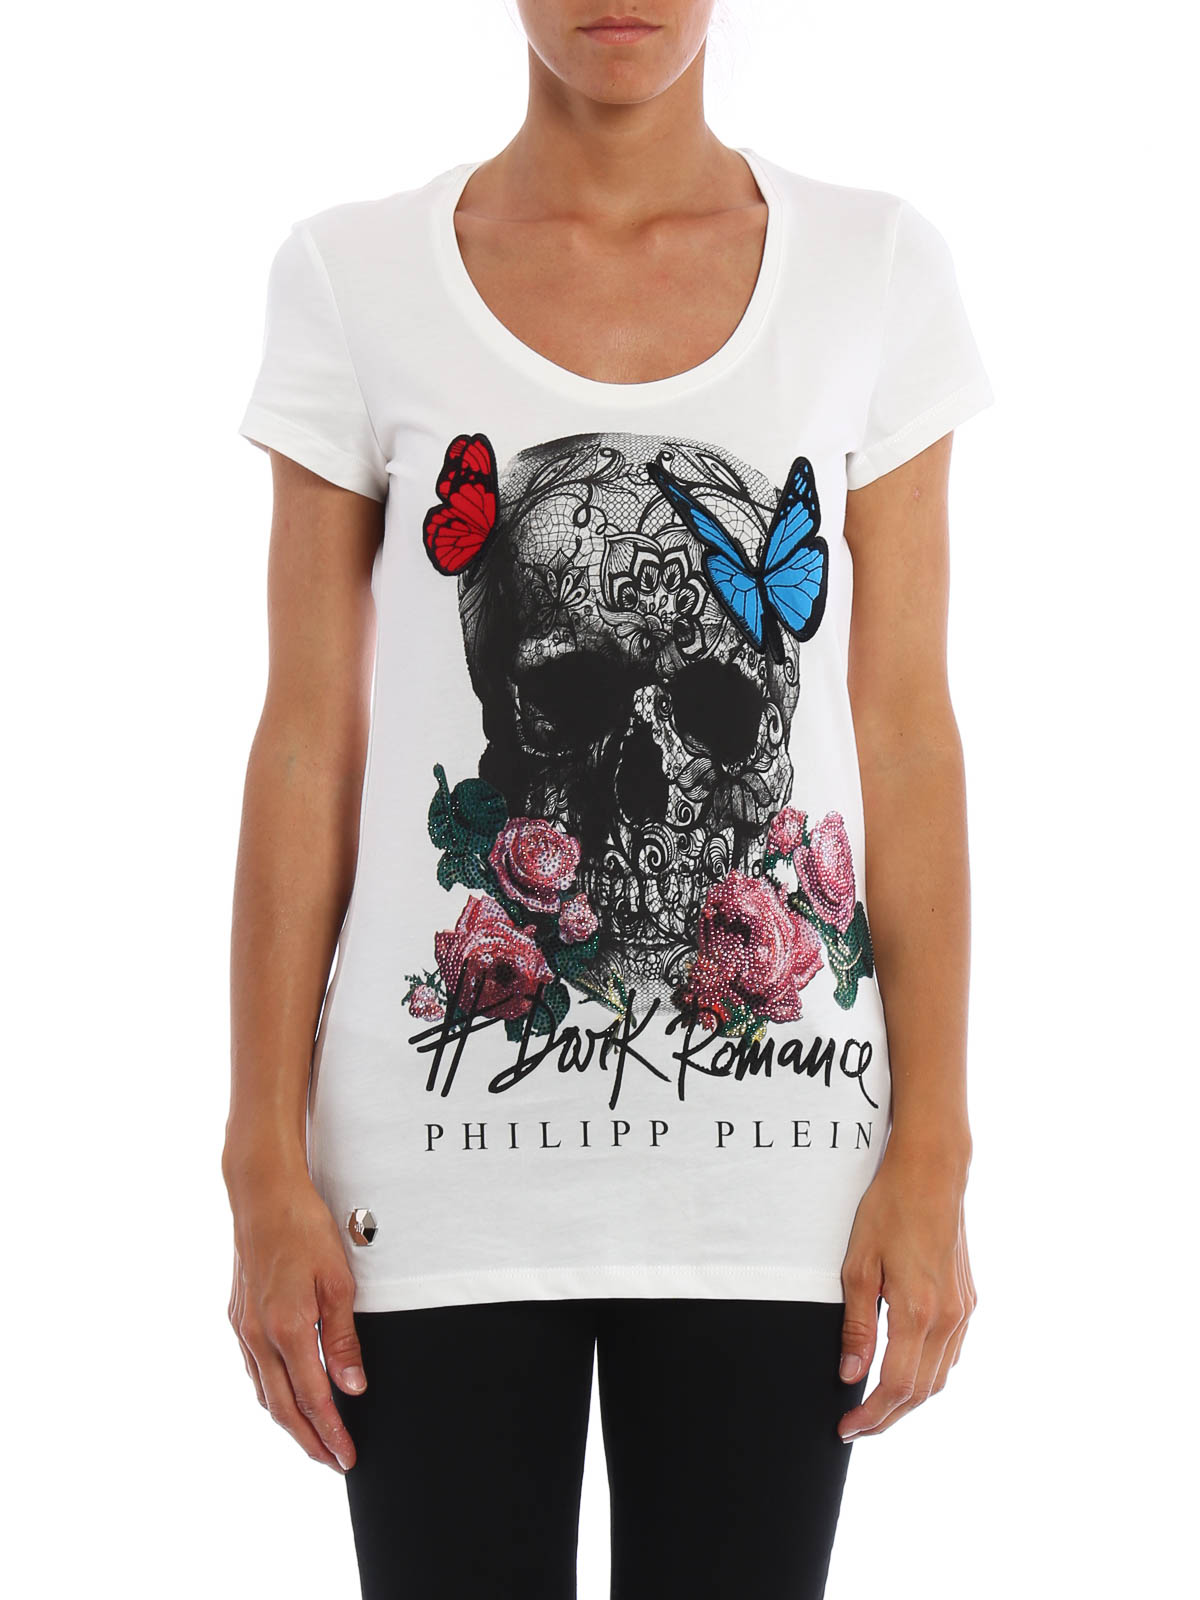 c1cd9c1c85982c Philipp Plein - T-Shirt Hidden Skull - Weiß - T-shirts - CW340929 01